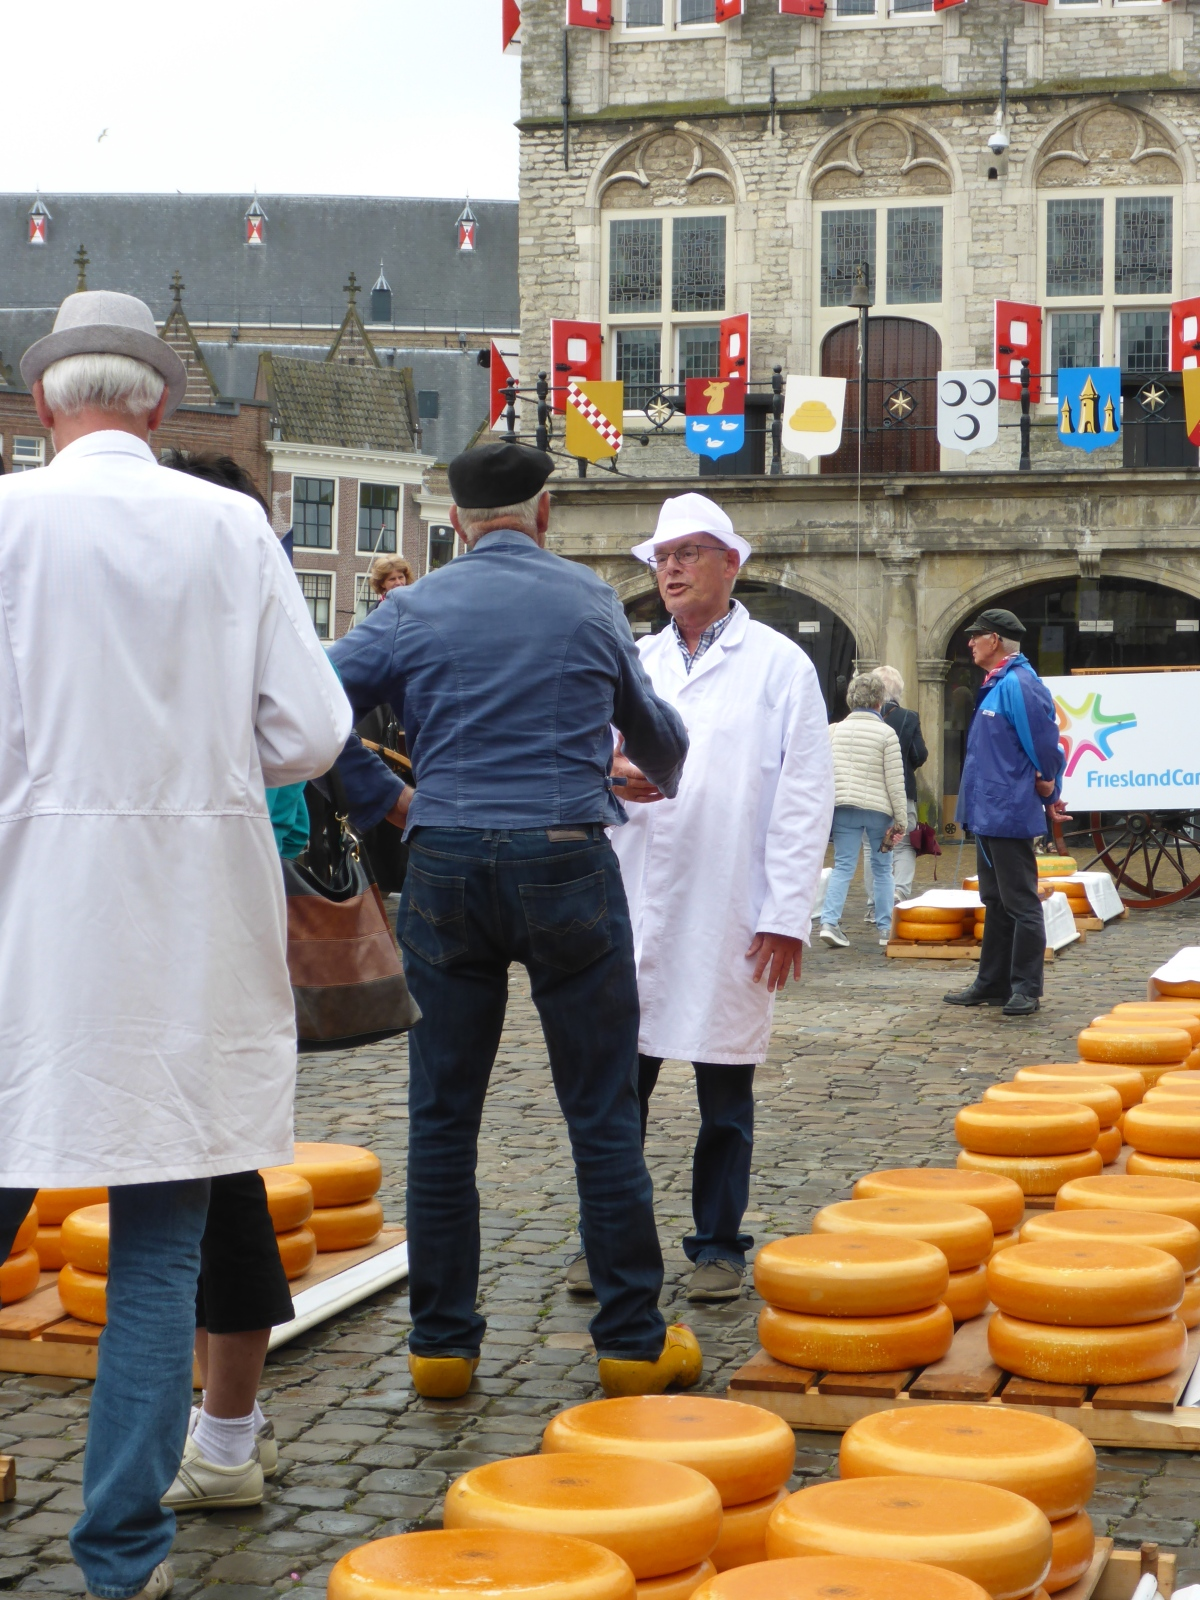 The Cheese Buyer (white) with the Cheese Farmer (Wood Shoes)